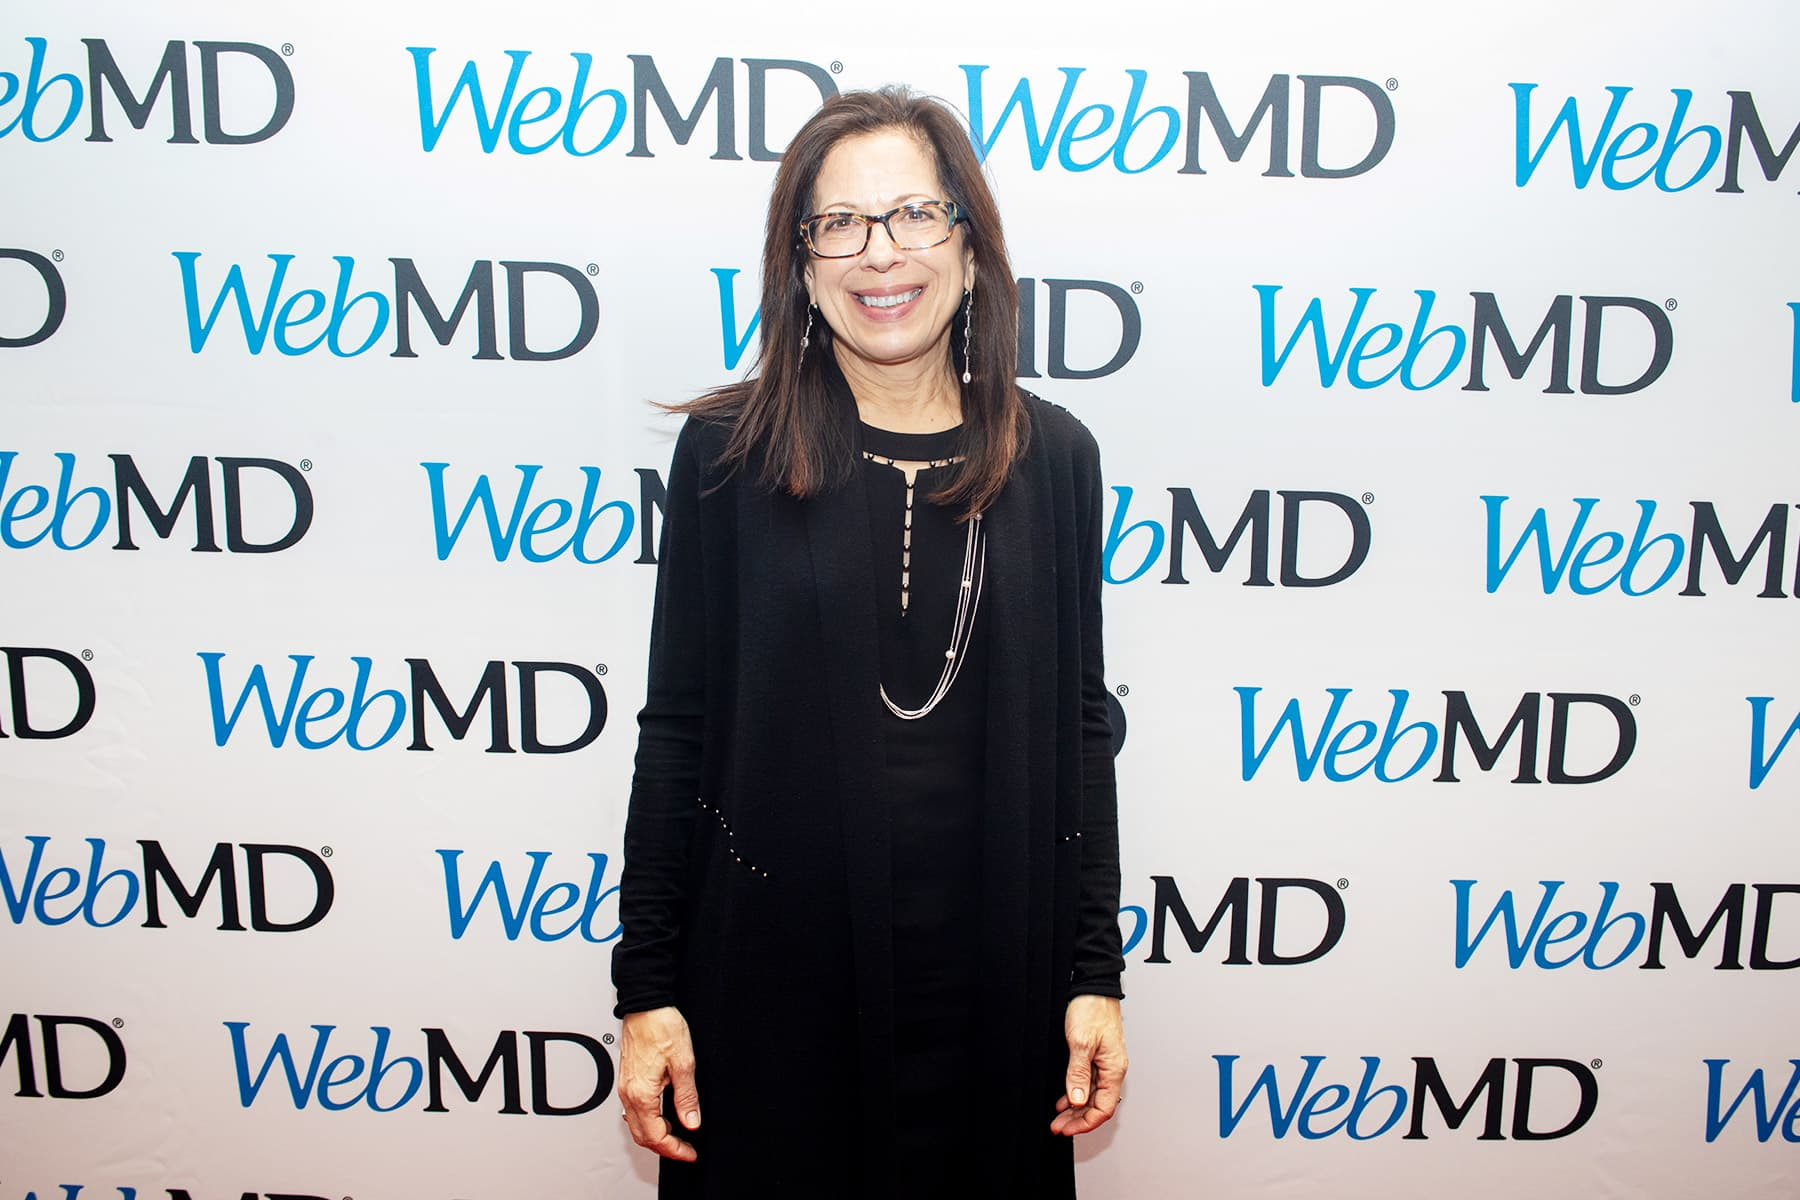 Webmd Honors Health Heroes Fighting Cancer